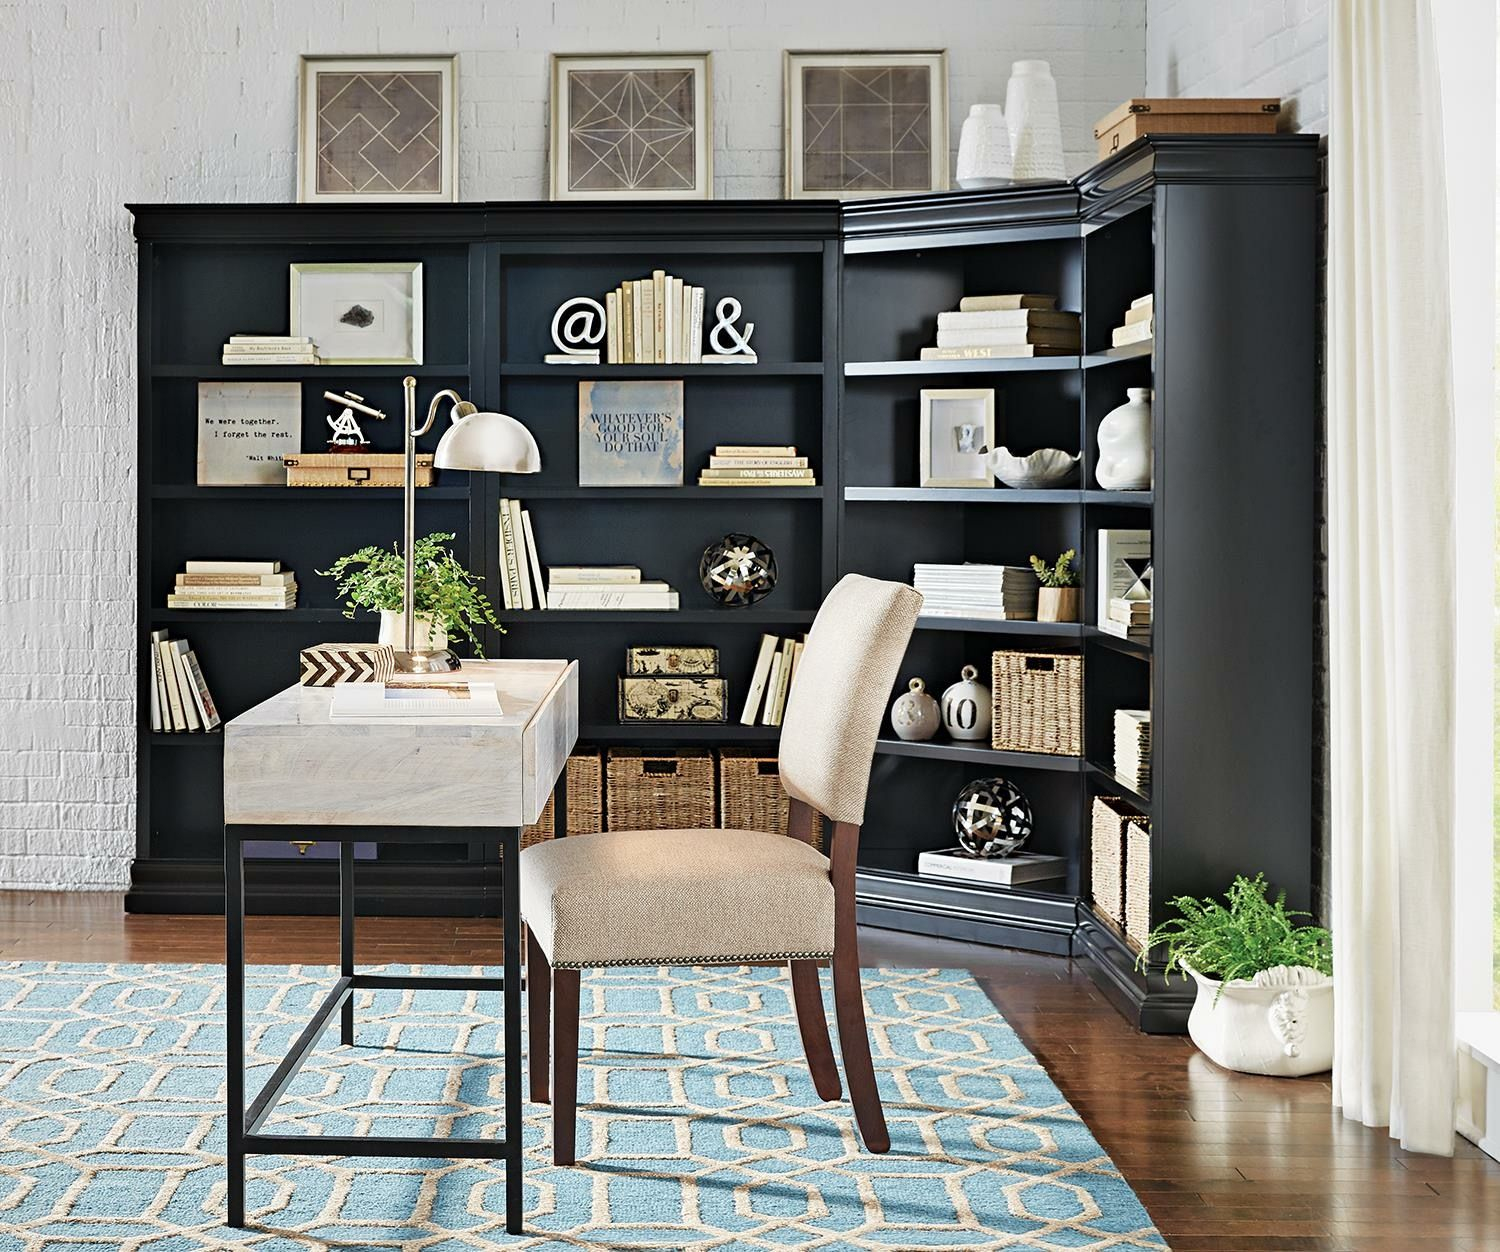 wall organizers home office. A Place For Style Lovers, Organizers, Trend Spotters And Party Throwers. City Citizens Country Inhabitants. Those Who Shape Their Dwellings Let Wall Organizers Home Office